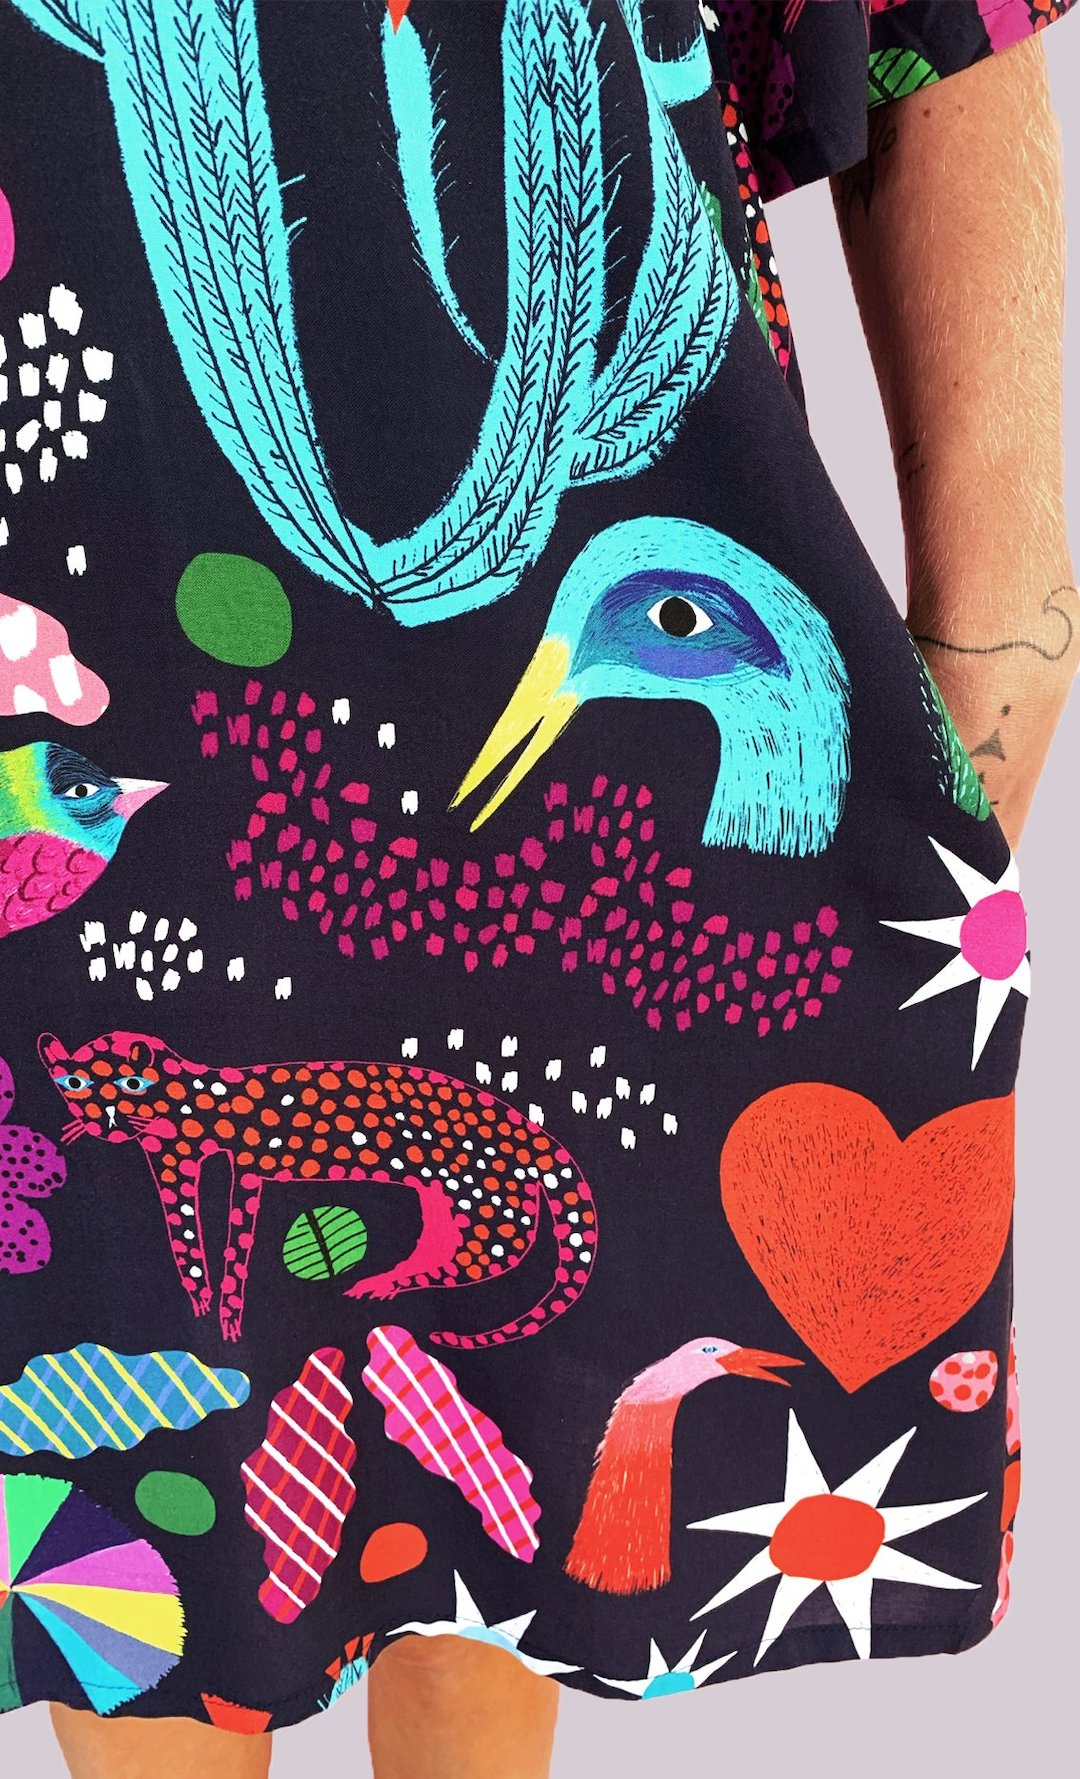 Illustrated clothes by Doops Design